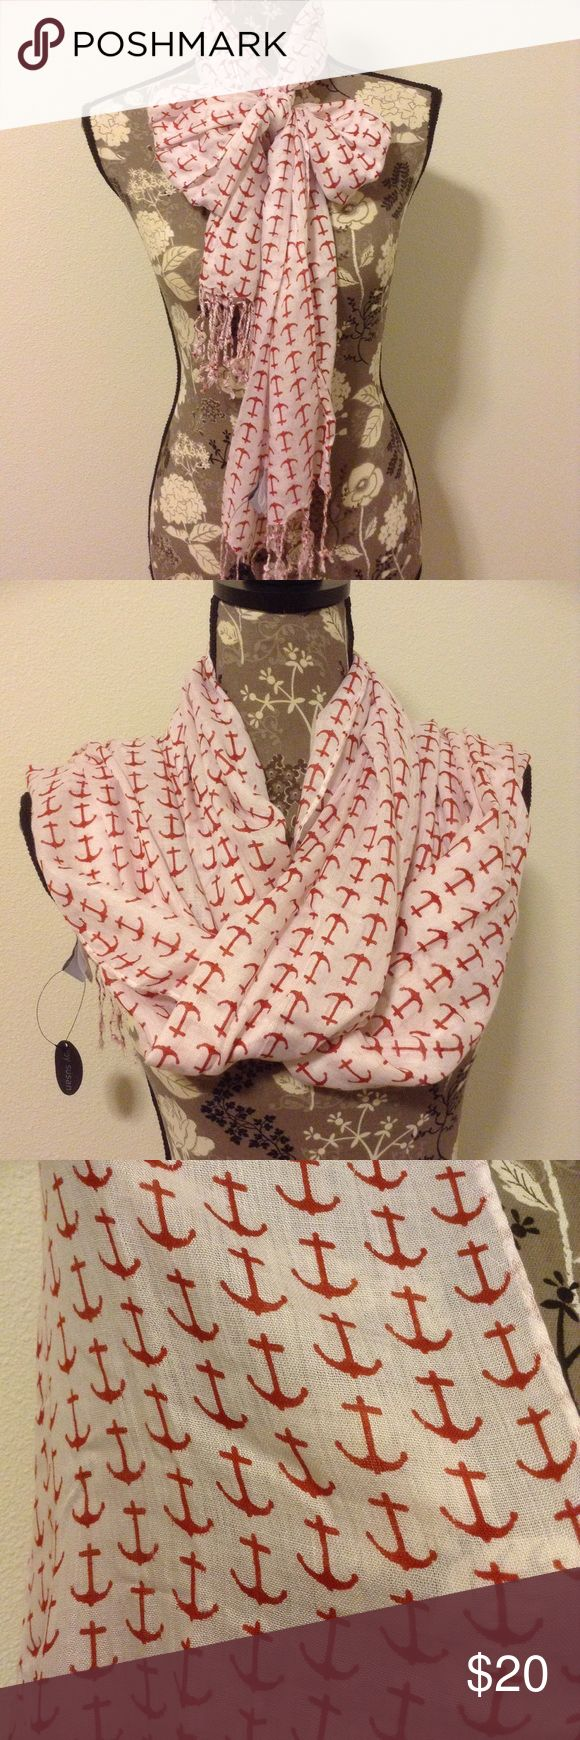 Red and white anchor scarf White scarf with red anchors. Fringed ends. Lightweight. Brand new with tags. Joy Susan Accessories Scarves & Wraps